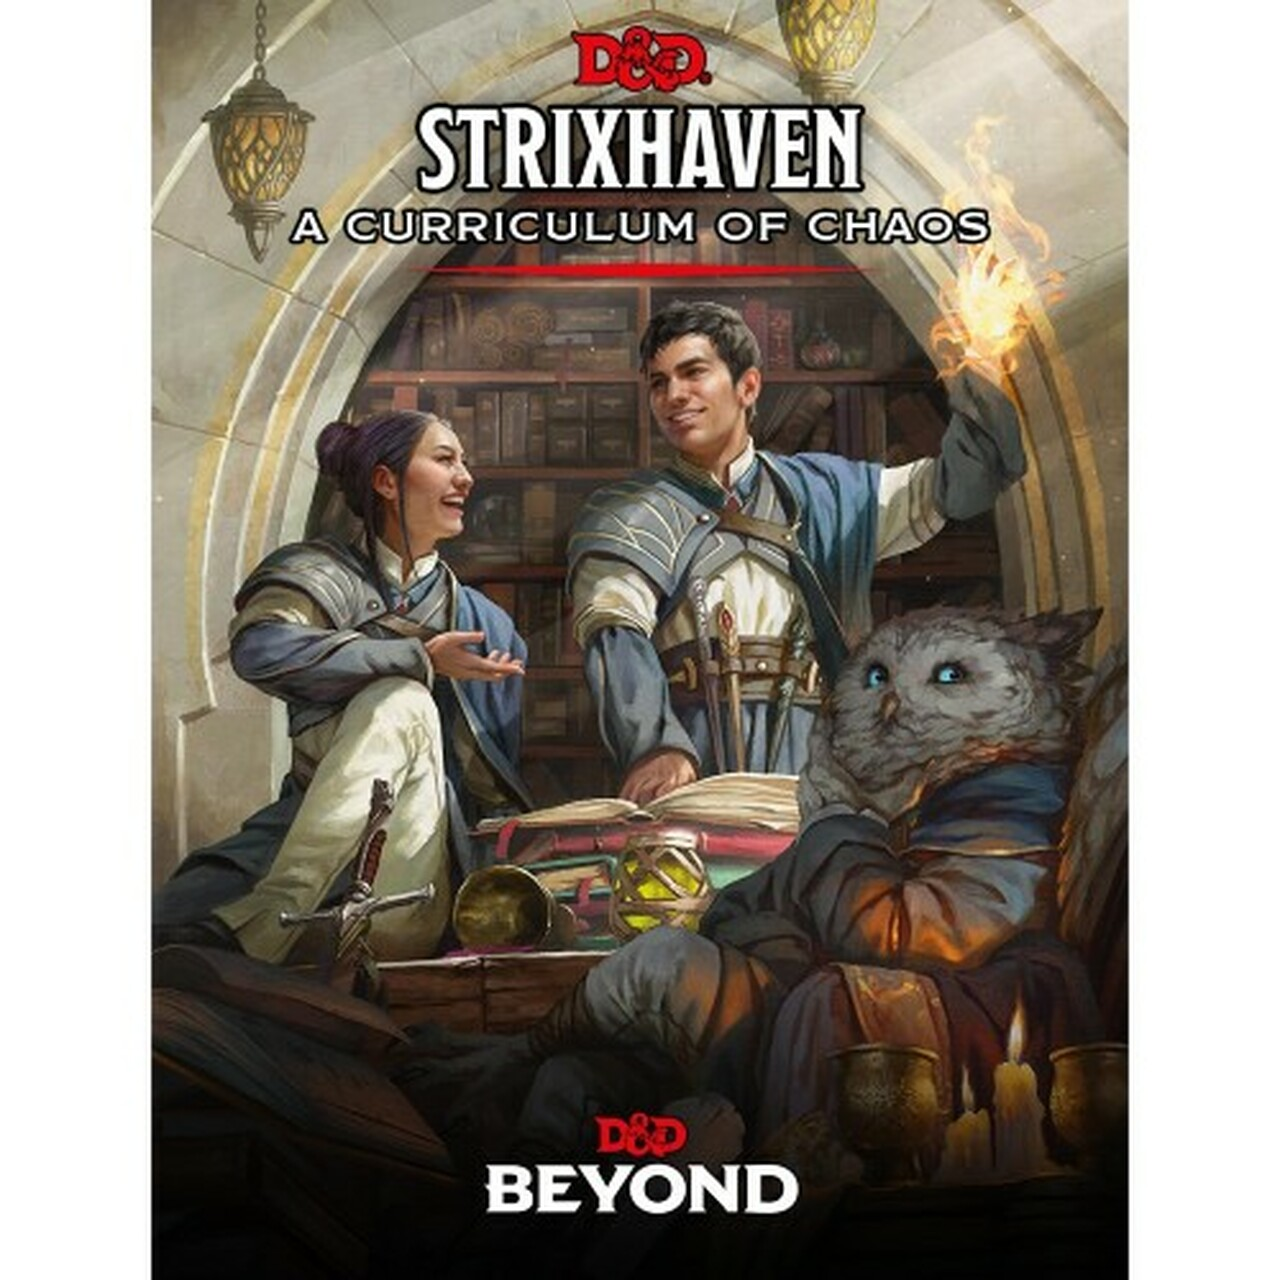 Strixhaven: A Curriculum of Chaos